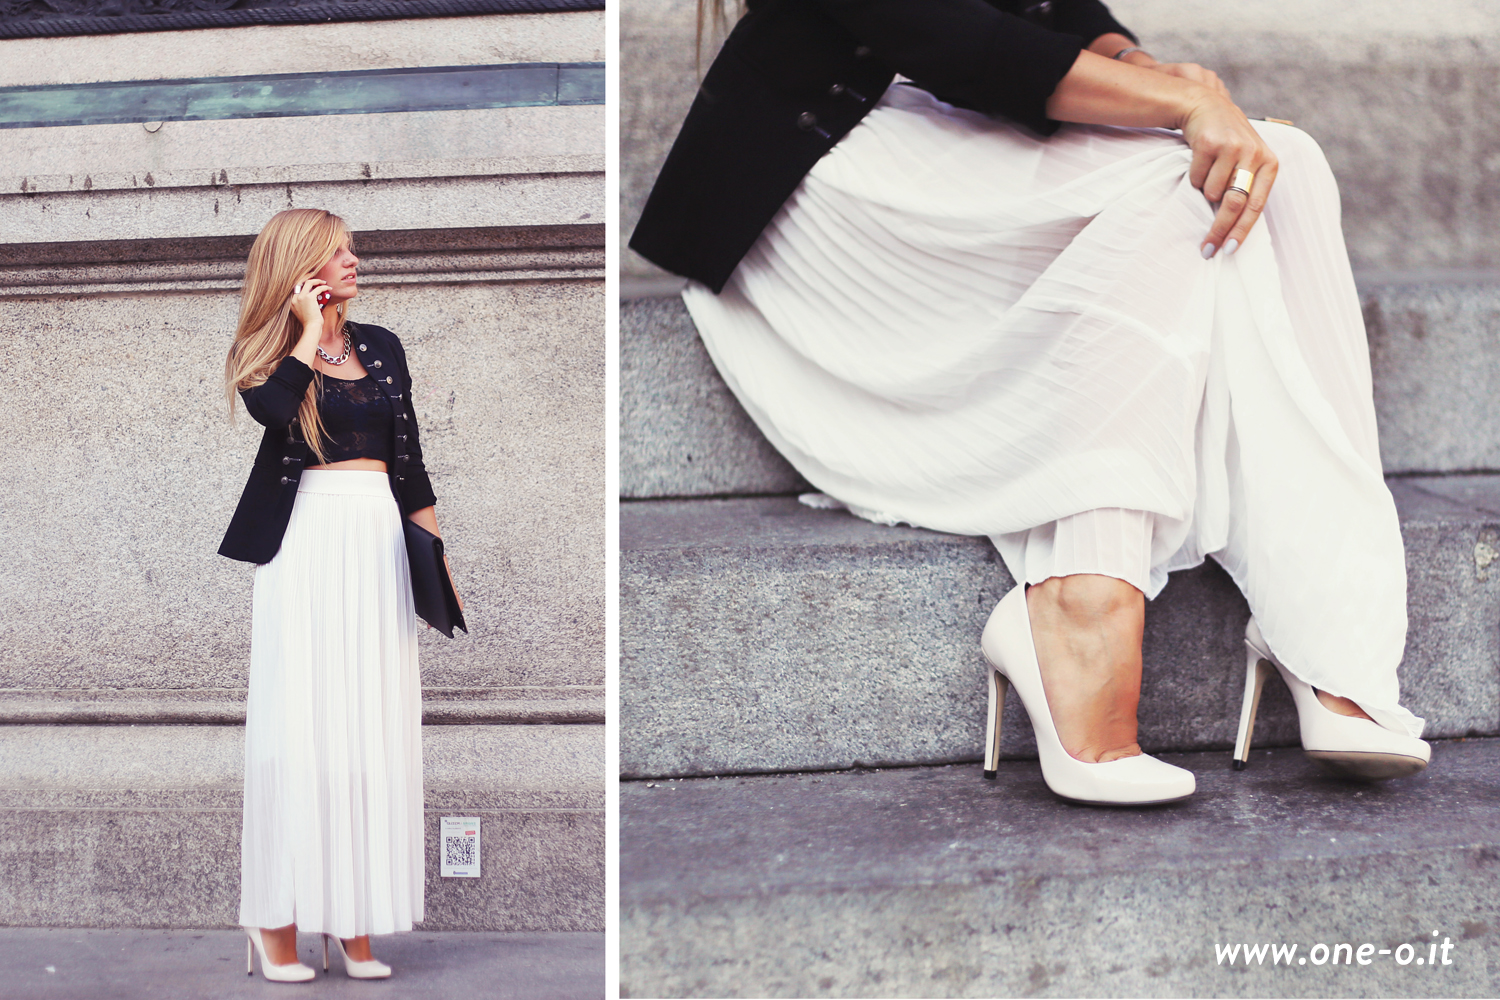 5_ways_to_style_your_maxi_skirt_oneo_10#fashion #style #ootd #outfit #maxiskirt #skirt #fashionista #shopping #summer #summeroutfit #classic #sporty